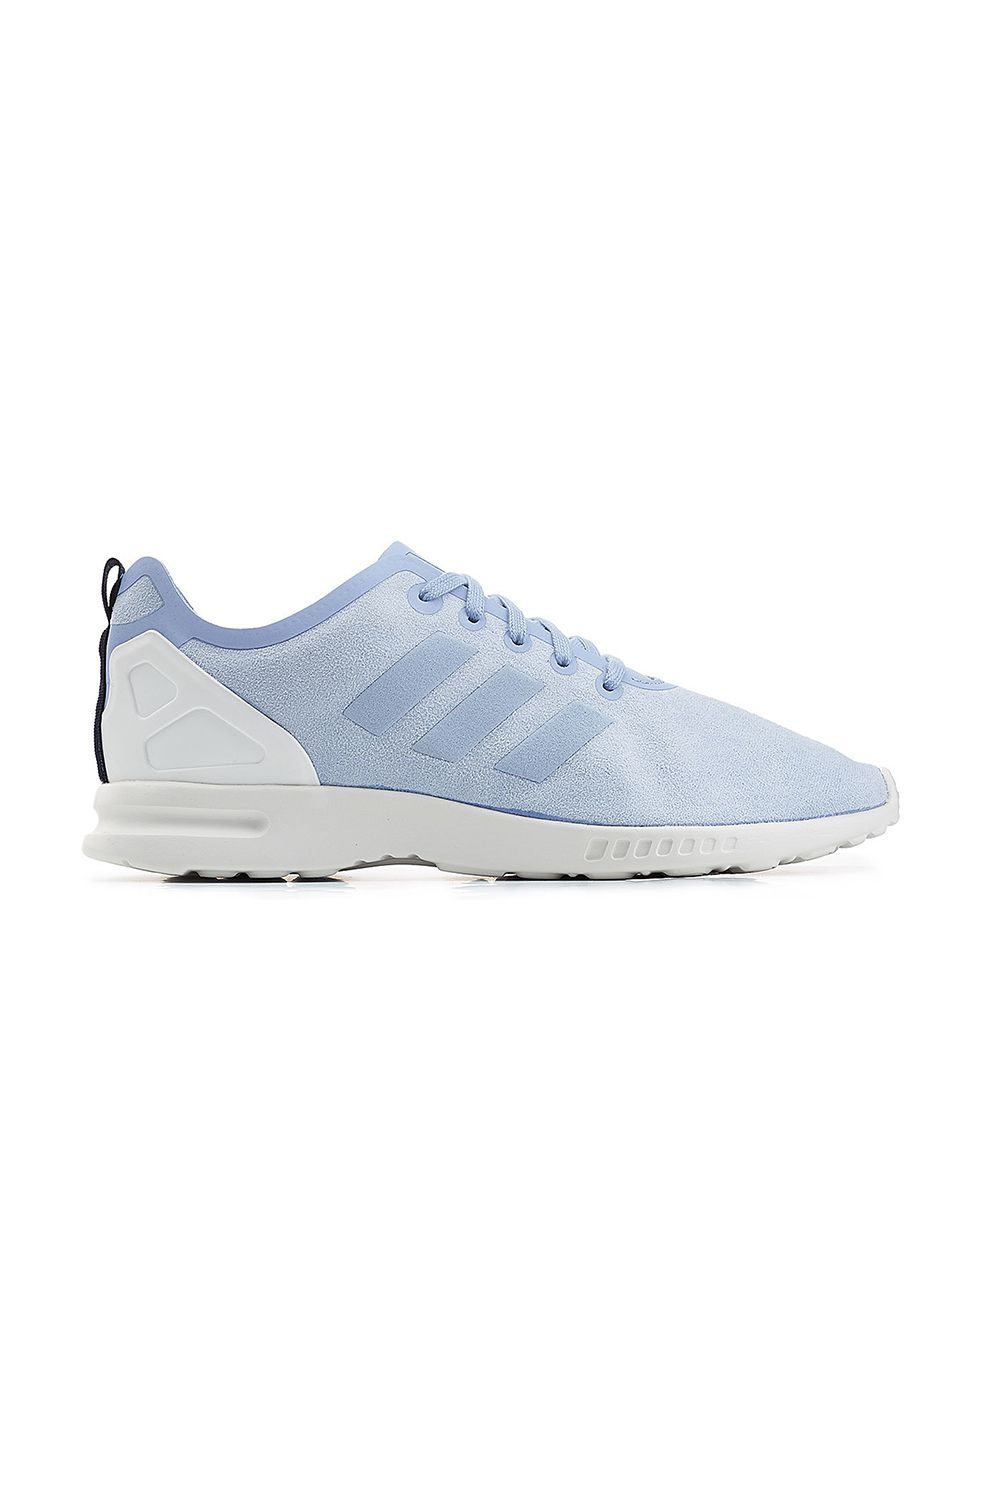 "<p>Blue is the fastest color. (Because Sonic.)&nbsp&#x3B;</p><p>Adidas, $79, <a href=""https://www.stylebop.com/en-us/women/zx-flux-smooth-sneakers-236893.html"" target=""_blank"" data-tracking-id=""recirc-text-link"">stylebop.com</a>.</p>"